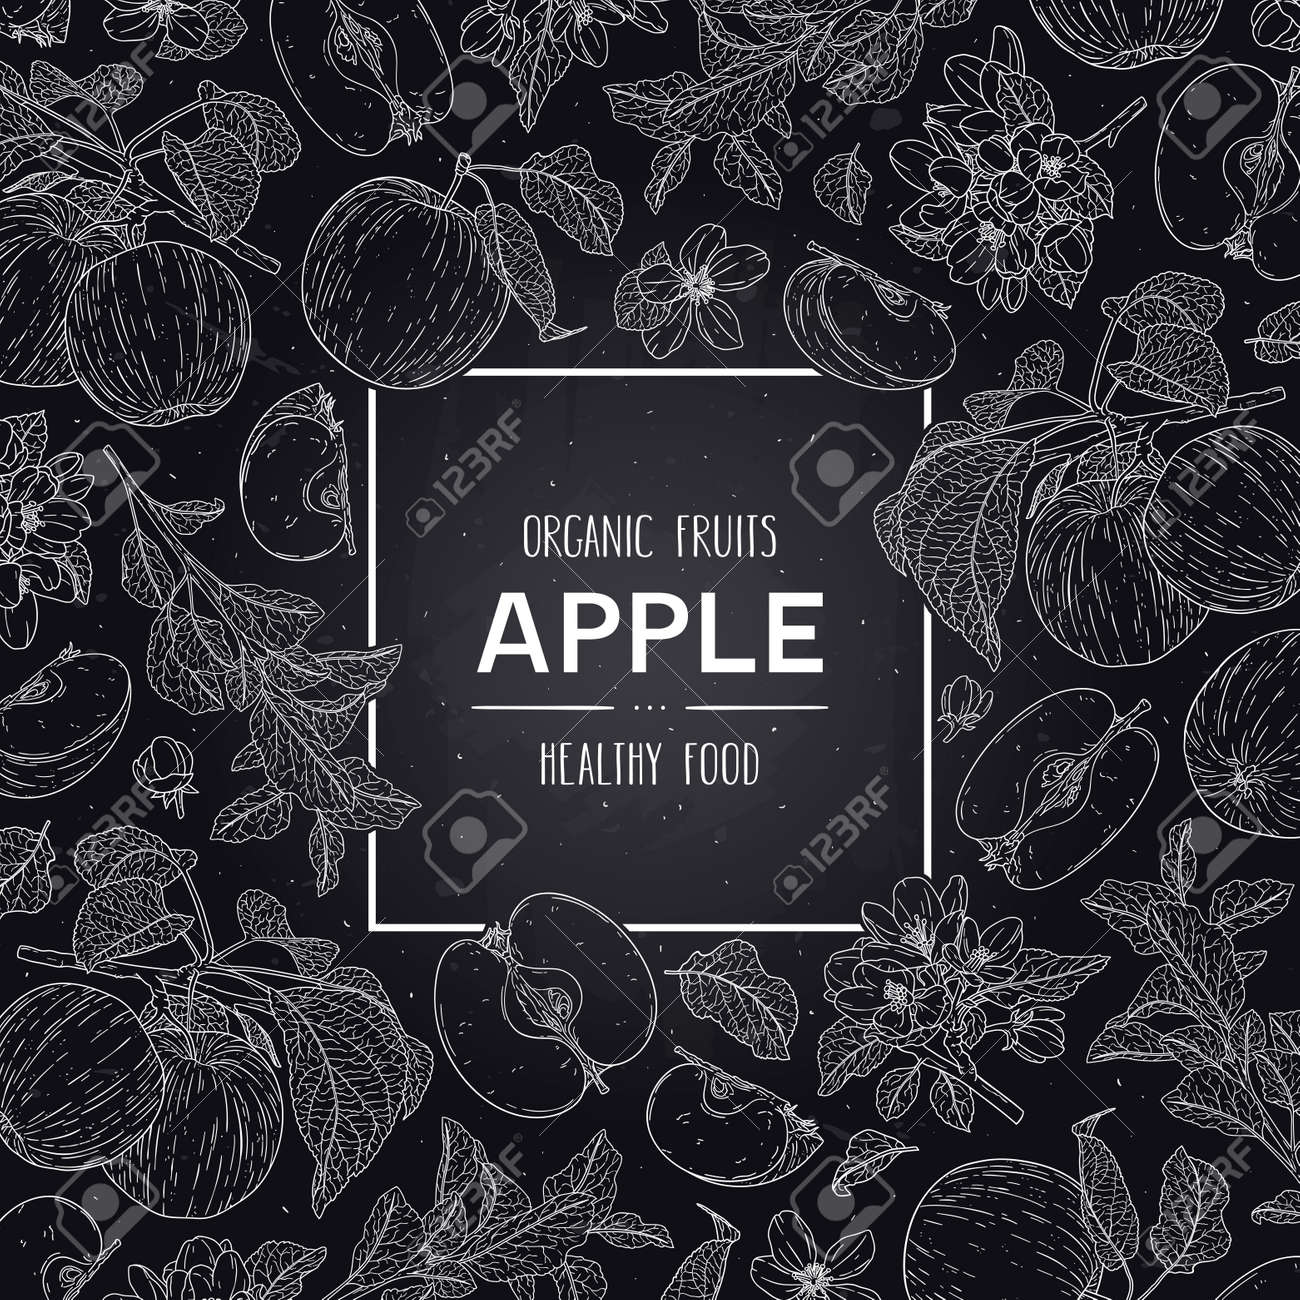 Vector hand drawn fruits frame with organic apple, half, flower, branch and leaves. Healthy doodle sketch illustration in chalkboard style. - 168597262